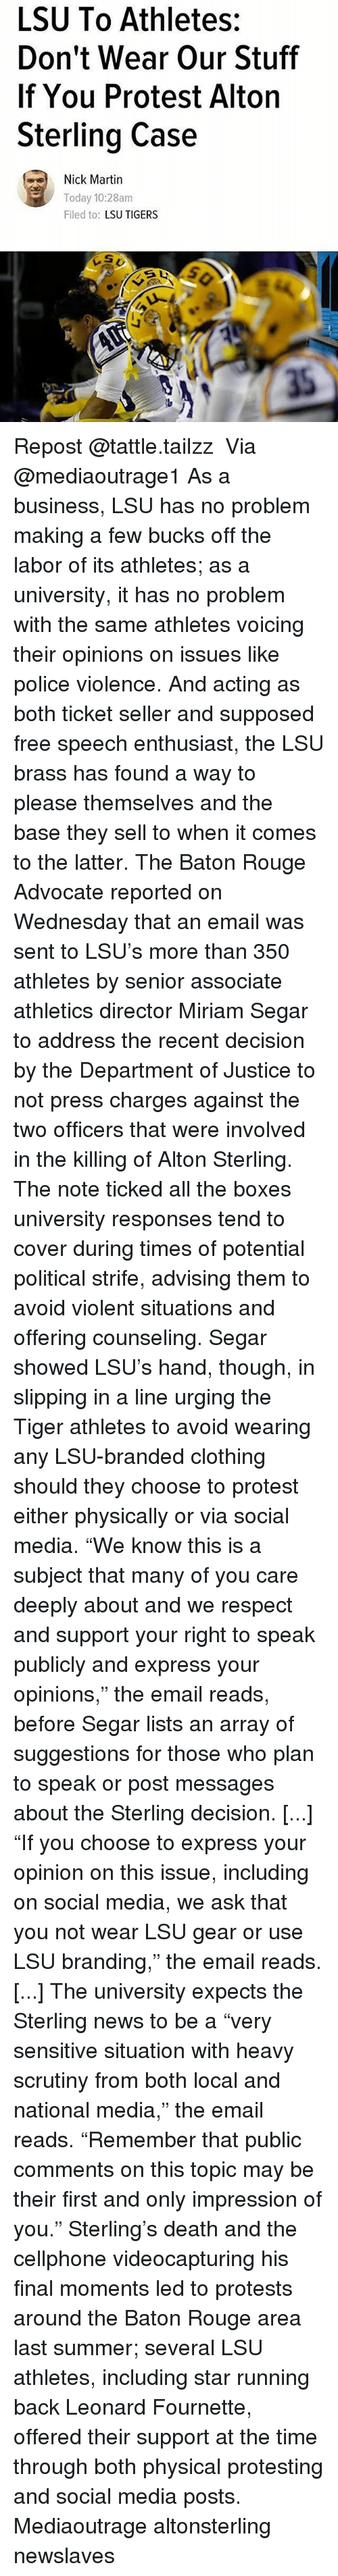 "lsu tigers: LSU To Athletes:  Don't Wear Our Stuff  If You Protest Alton  Sterling Case  Nick Martin  Today 10:28am  Filed to  LSU TIGERS Repost @tattle.tailzz ・・・ Via @mediaoutrage1 As a business, LSU has no problem making a few bucks off the labor of its athletes; as a university, it has no problem with the same athletes voicing their opinions on issues like police violence. And acting as both ticket seller and supposed free speech enthusiast, the LSU brass has found a way to please themselves and the base they sell to when it comes to the latter. The Baton Rouge Advocate reported on Wednesday that an email was sent to LSU's more than 350 athletes by senior associate athletics director Miriam Segar to address the recent decision by the Department of Justice to not press charges against the two officers that were involved in the killing of Alton Sterling. The note ticked all the boxes university responses tend to cover during times of potential political strife, advising them to avoid violent situations and offering counseling. Segar showed LSU's hand, though, in slipping in a line urging the Tiger athletes to avoid wearing any LSU-branded clothing should they choose to protest either physically or via social media. ""We know this is a subject that many of you care deeply about and we respect and support your right to speak publicly and express your opinions,"" the email reads, before Segar lists an array of suggestions for those who plan to speak or post messages about the Sterling decision. [...] ""If you choose to express your opinion on this issue, including on social media, we ask that you not wear LSU gear or use LSU branding,"" the email reads. [...] The university expects the Sterling news to be a ""very sensitive situation with heavy scrutiny from both local and national media,"" the email reads. ""Remember that public comments on this topic may be their first and only impression of you."" Sterling's death and the cellphone videocapturing his final moments led to protests around the Baton Rouge area last summer; several LSU athletes, including star running back Leonard Fournette, offered their support at the time through both physical protesting and social media posts. Mediaoutrage altonsterling newslaves"